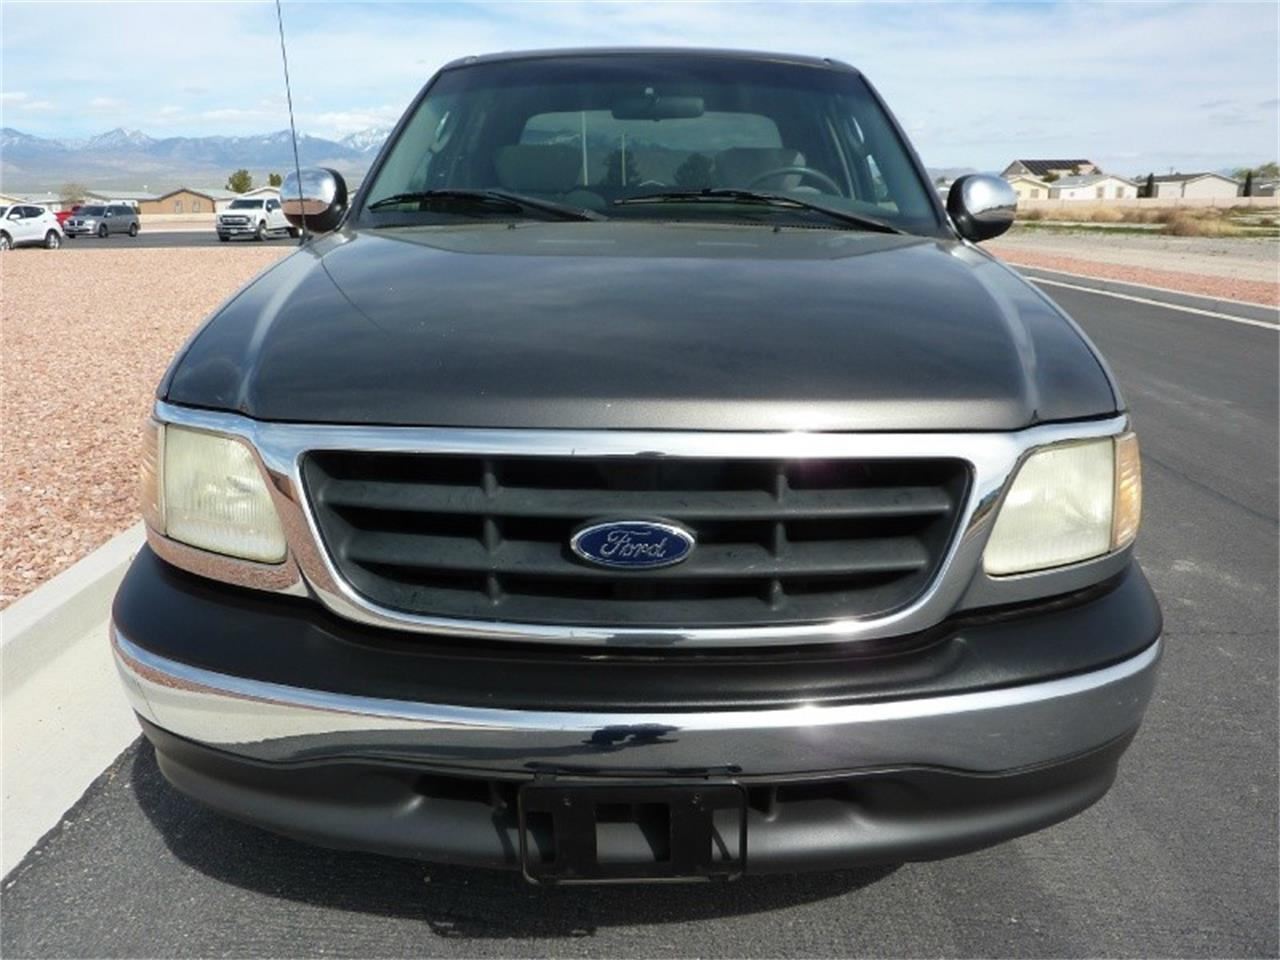 Large Picture of '02 F150 located in Pahrump Nevada - $5,999.00 - PT8J